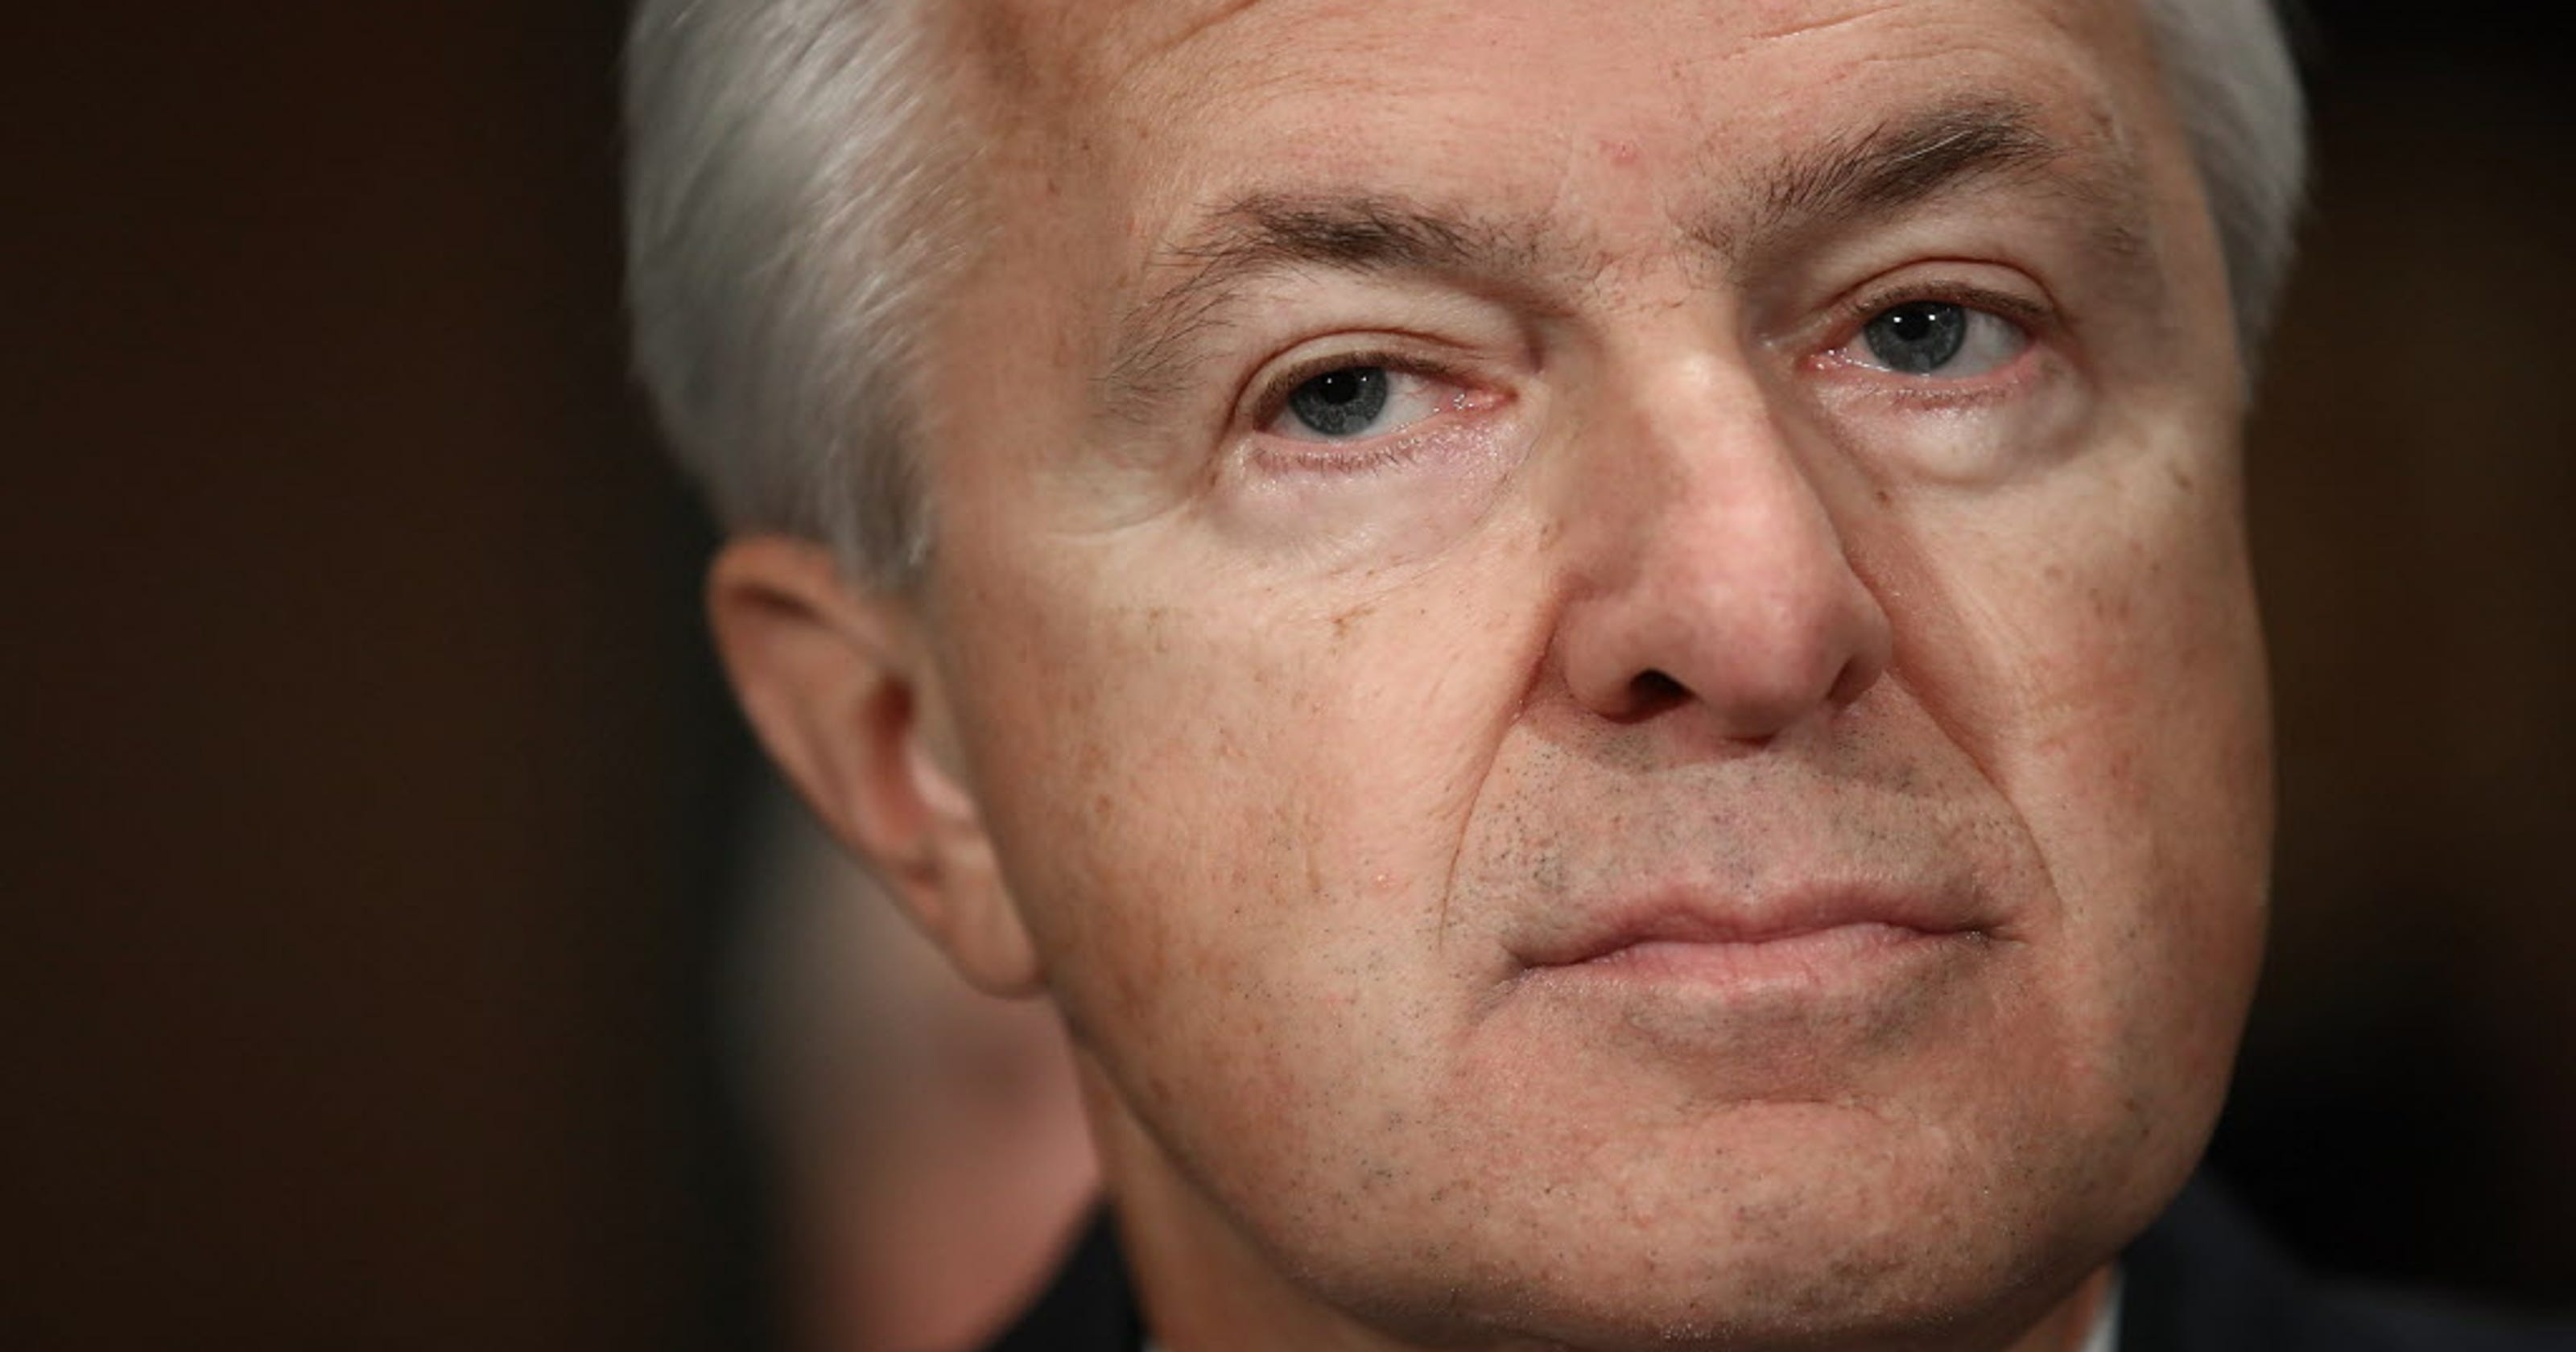 Making bank: The 10 best-paid bankers (and not all are CEOs)